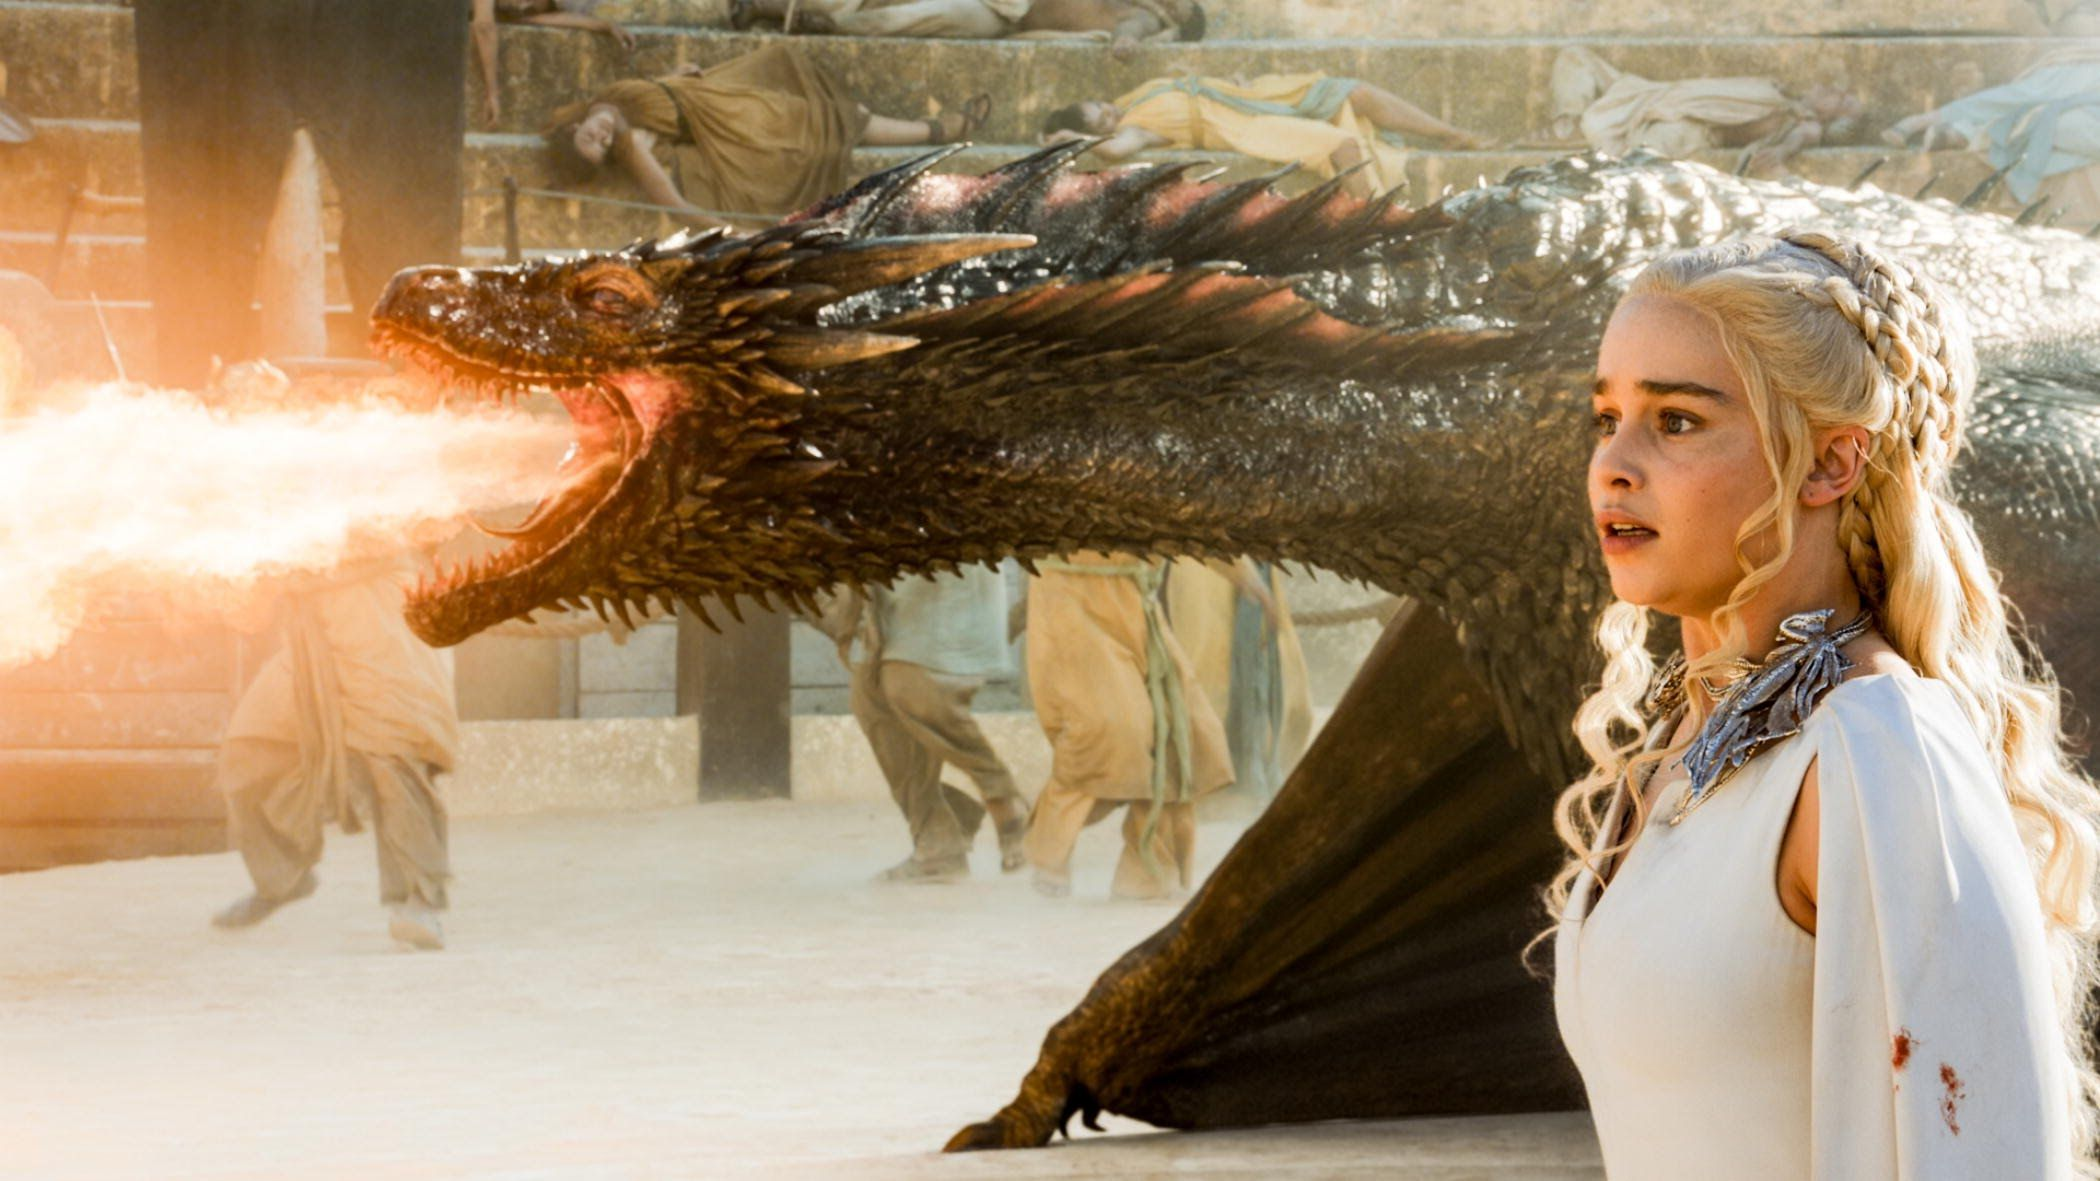 You Absolutely Need This 'Game of Thrones'-Inspired Fire-Breathing Dragon Lamp From Etsy